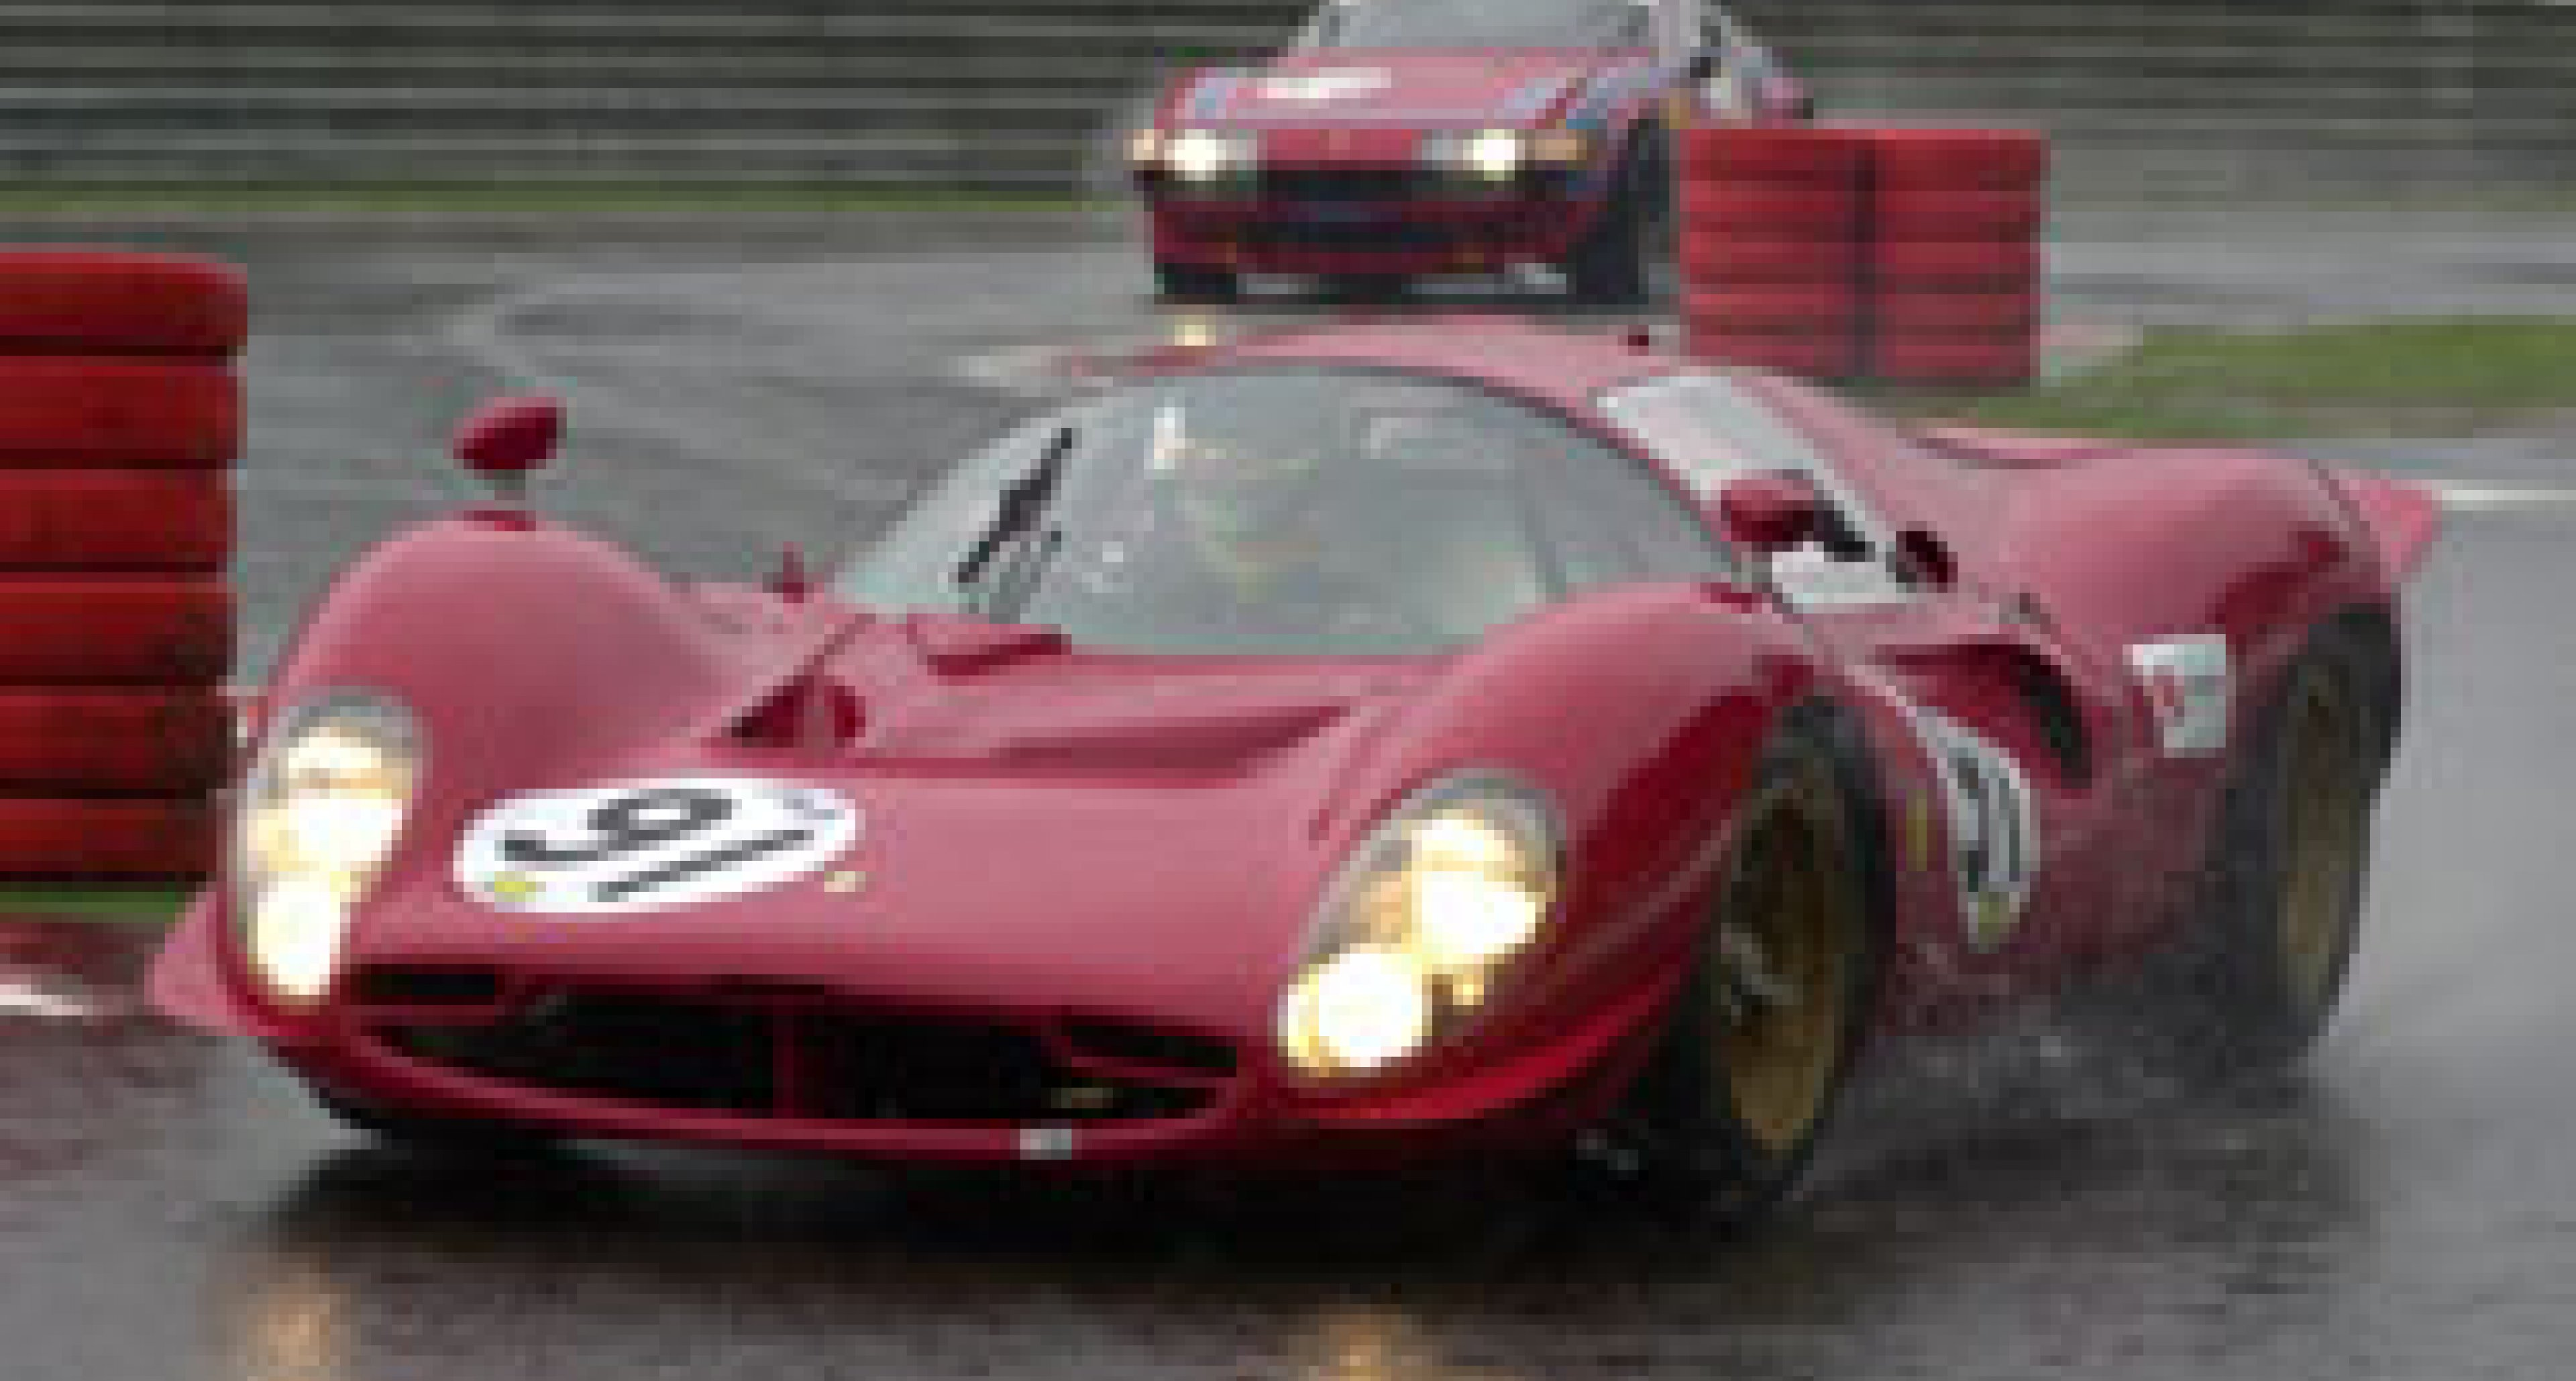 Wet Spa for the annual 'Ferrari Days' Weekend 2003